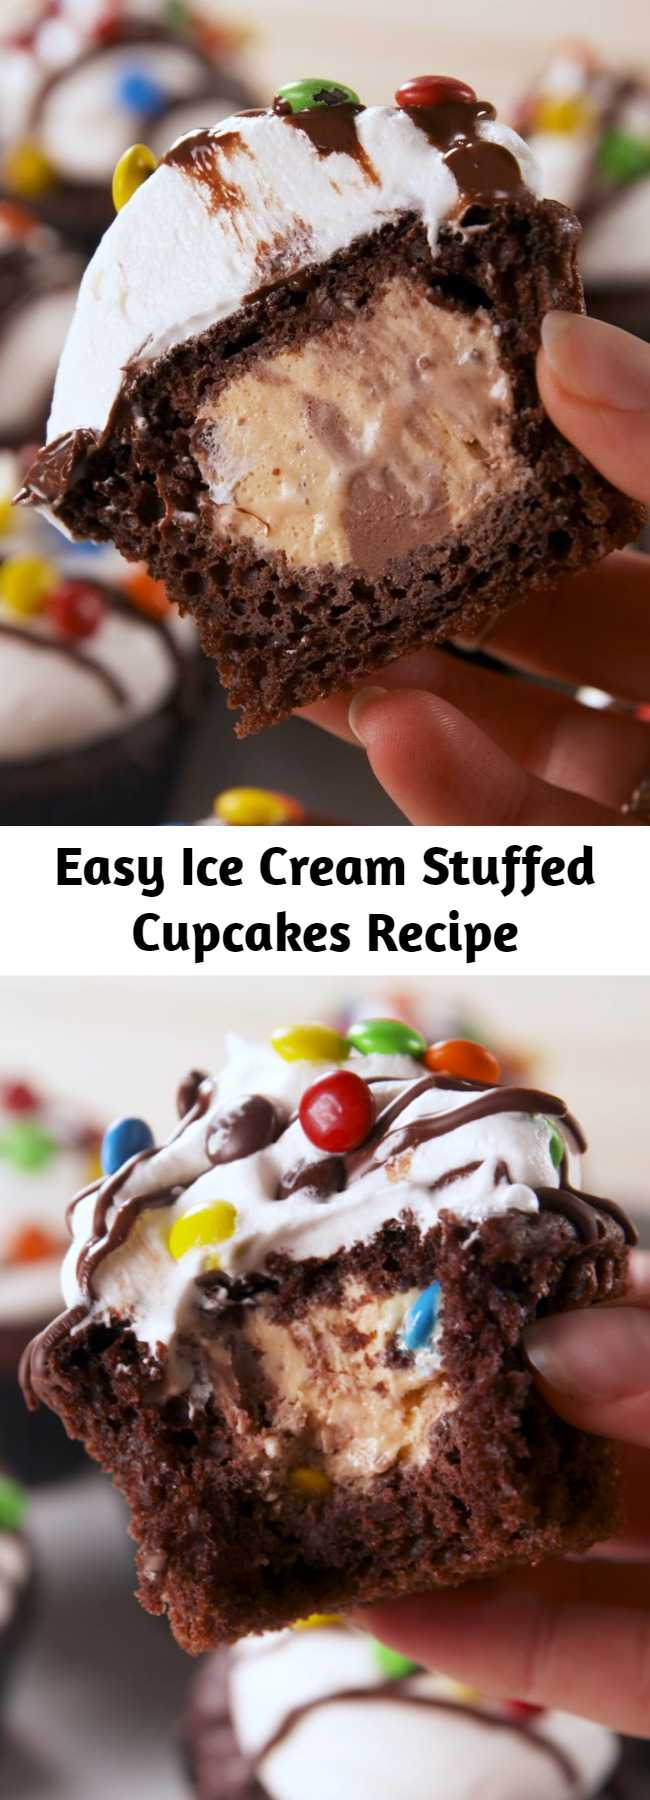 Easy Ice Cream Stuffed Cupcakes Recipe - These Ice Cream Stuffed Cupcakes are made with moist chocolate cupcakes stuffed with ice cream and topped with whipped cream, chocolate and sprinkles! Such a great summer treat with so many flavor possibilities! #icecream #summer #dessert #summerdessert